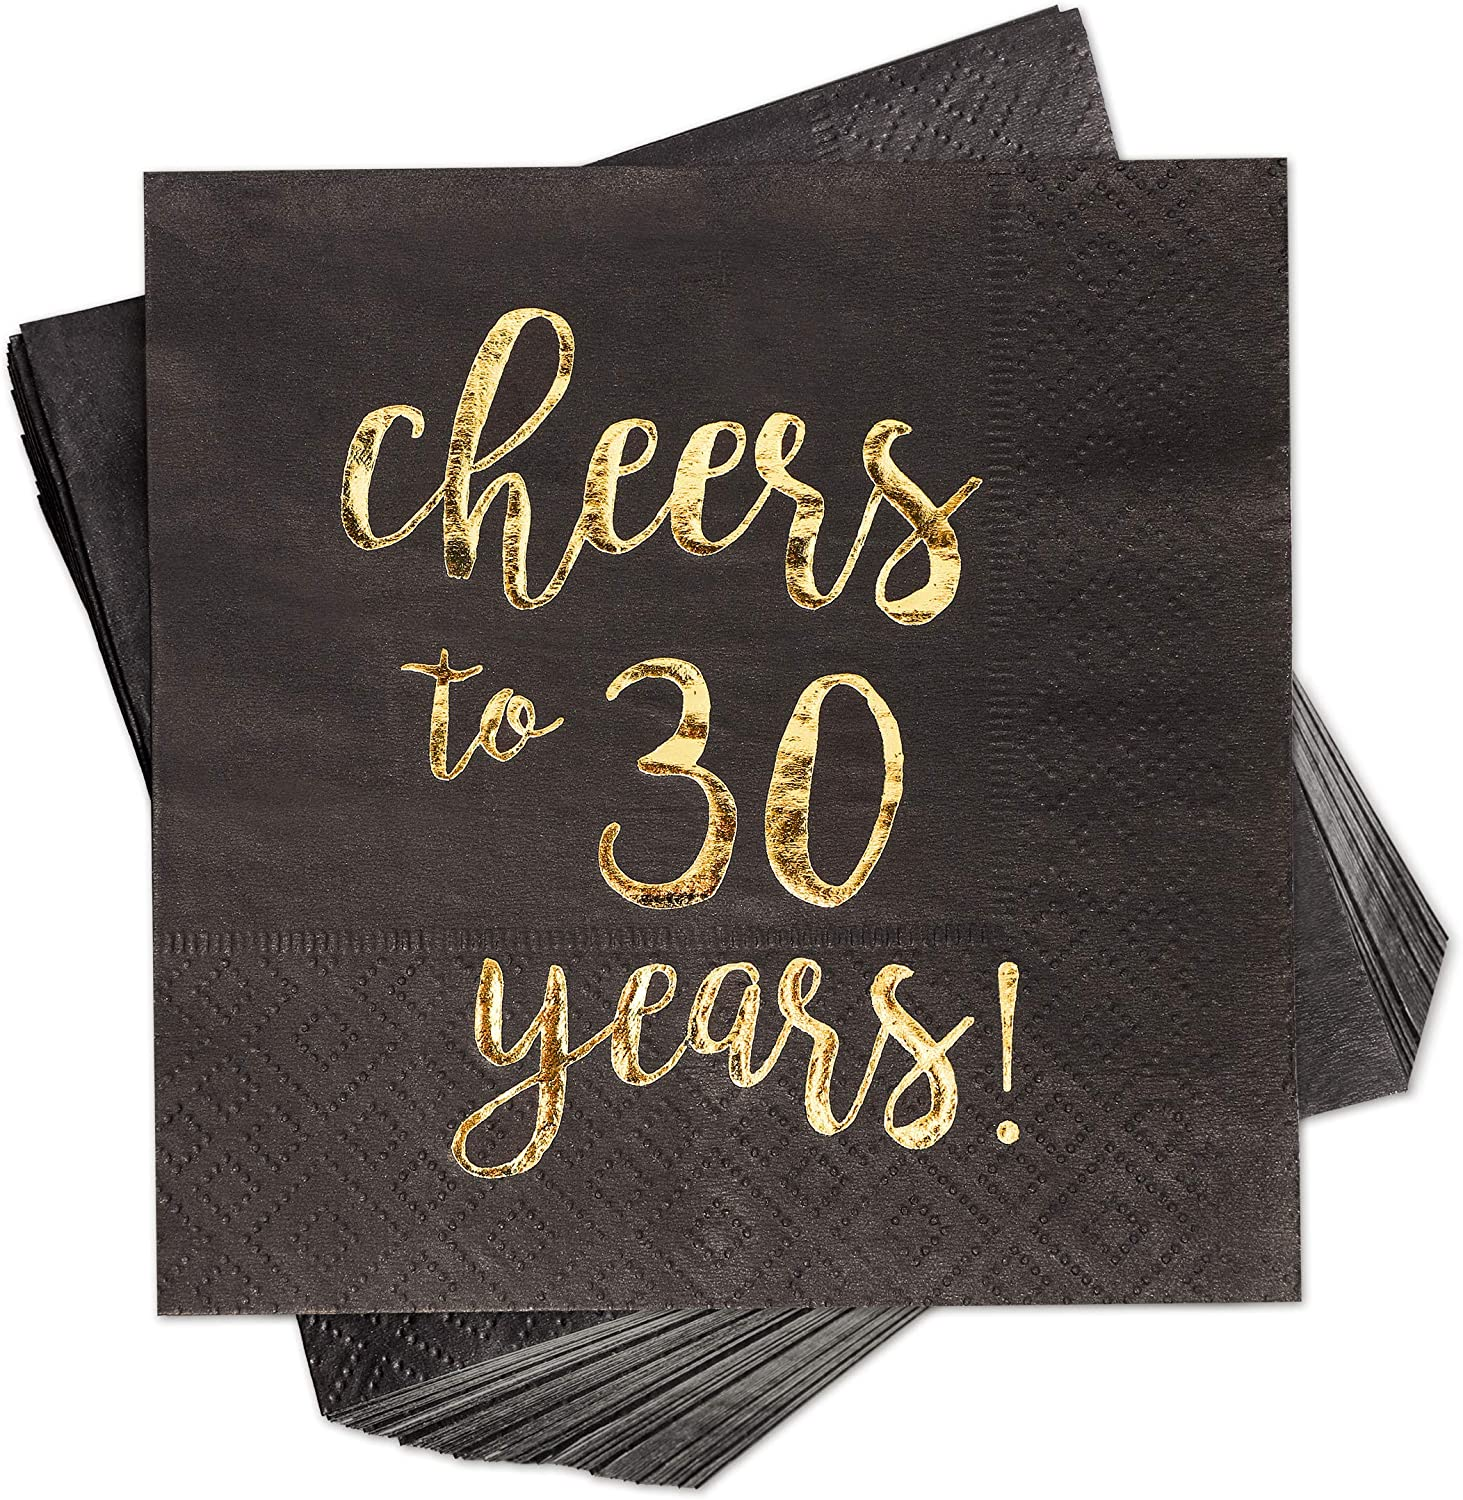 Cheers to 30 Years! Gold Foil Paper Cocktail Napkins (5 x 5 Inches, 100 Pack)